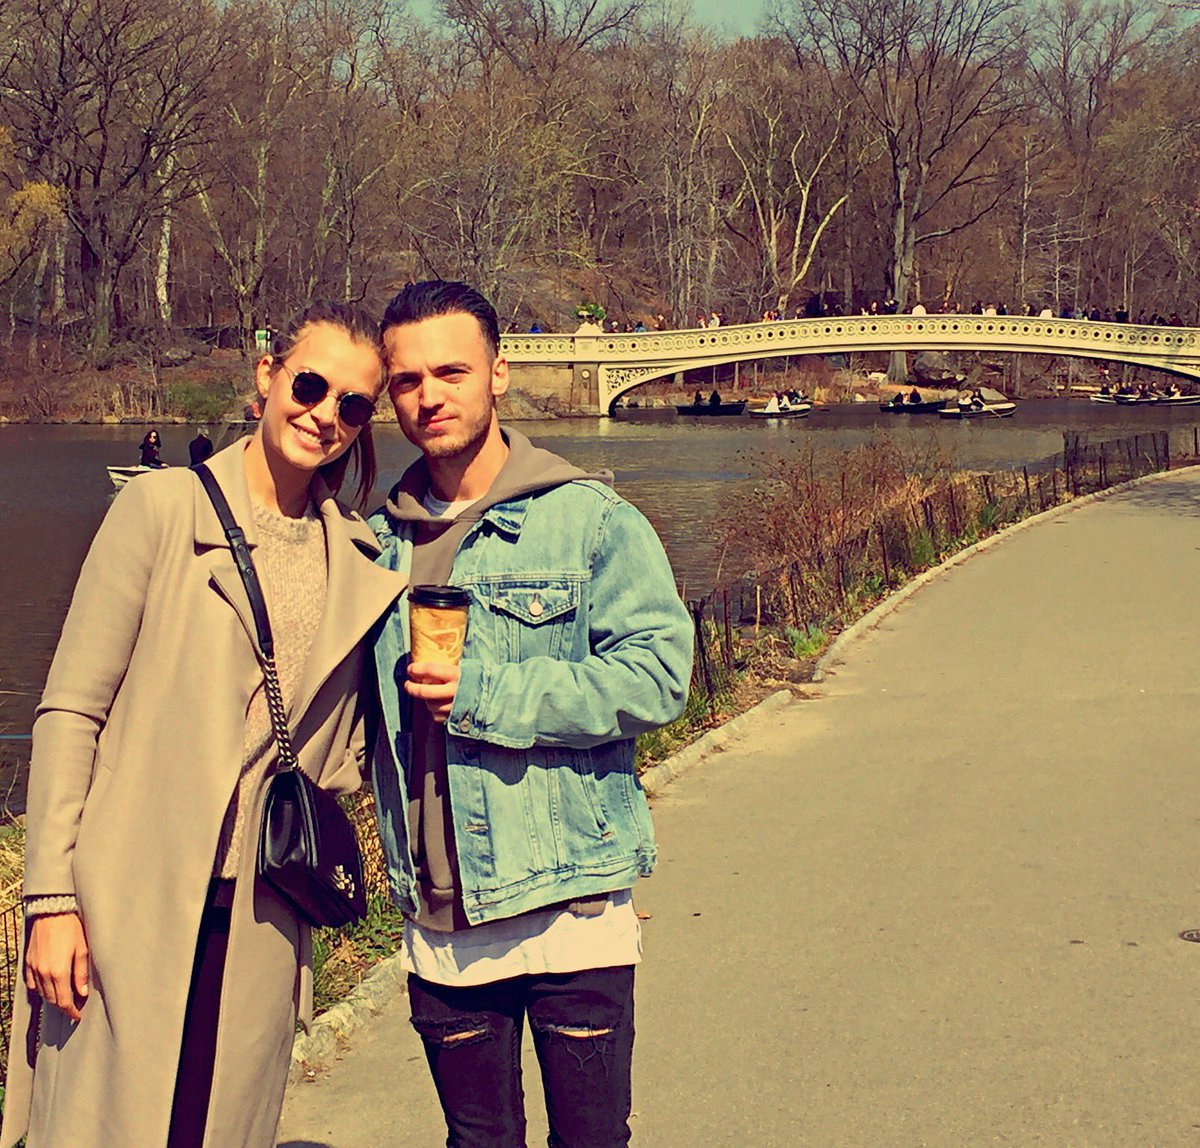 Thanks to these two, @bohnes and @JosephinSkriver , for spoiling us in New York this week. Love you❤️ #centralpark https://t.co/y4CiFuOkha